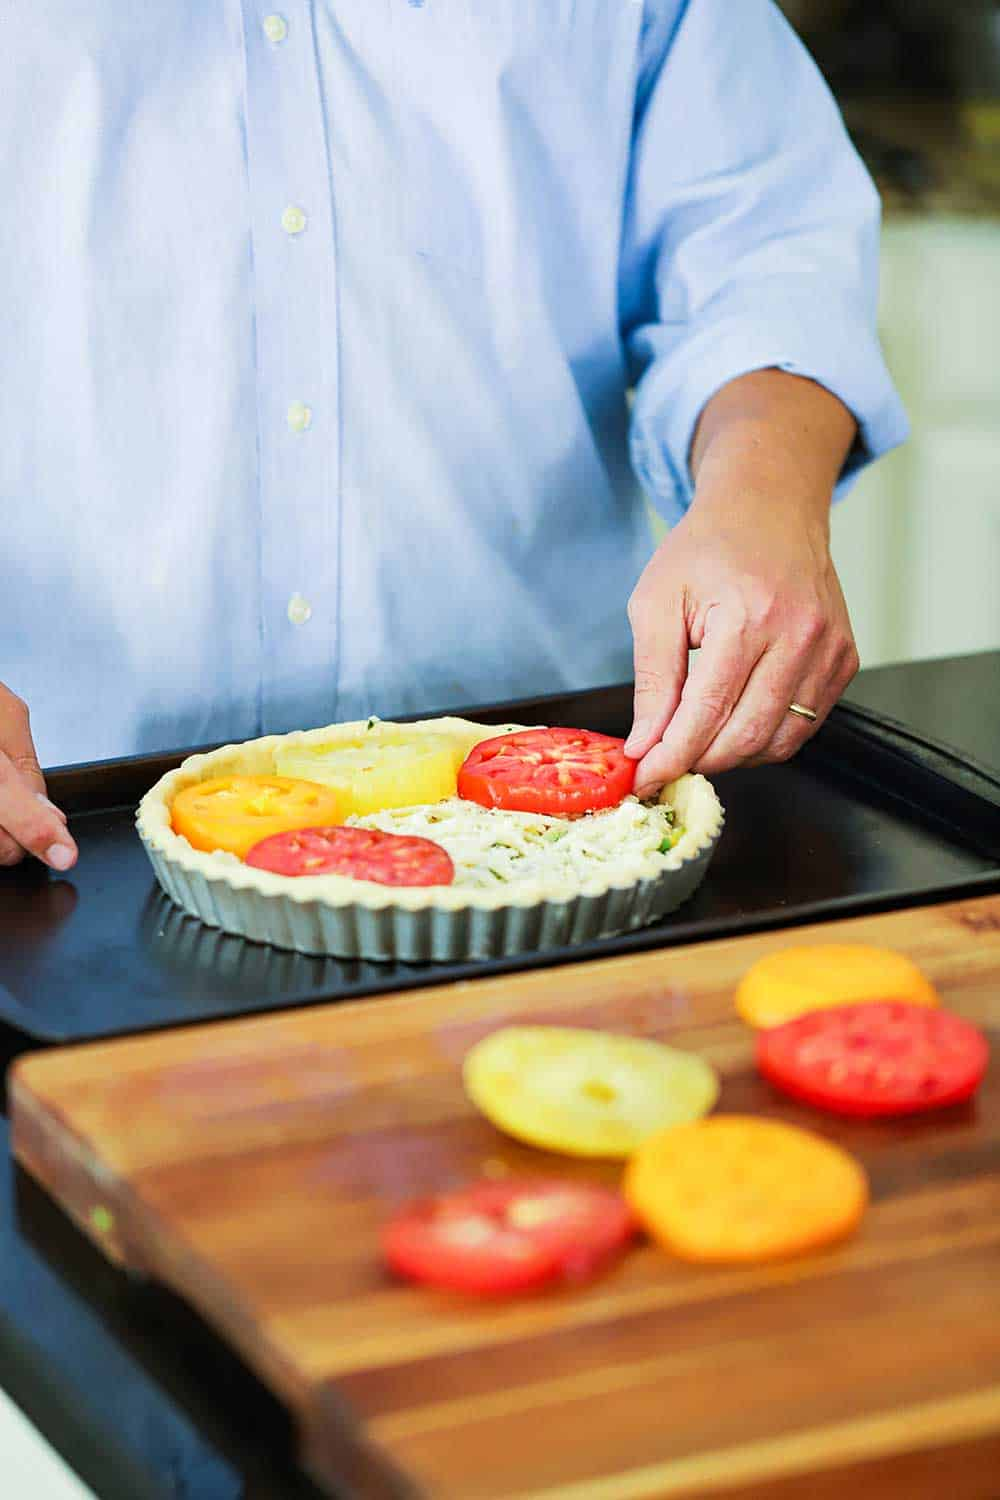 A person layering sliced heirloom tomatoes into a tart pan filled with cheese and corn.